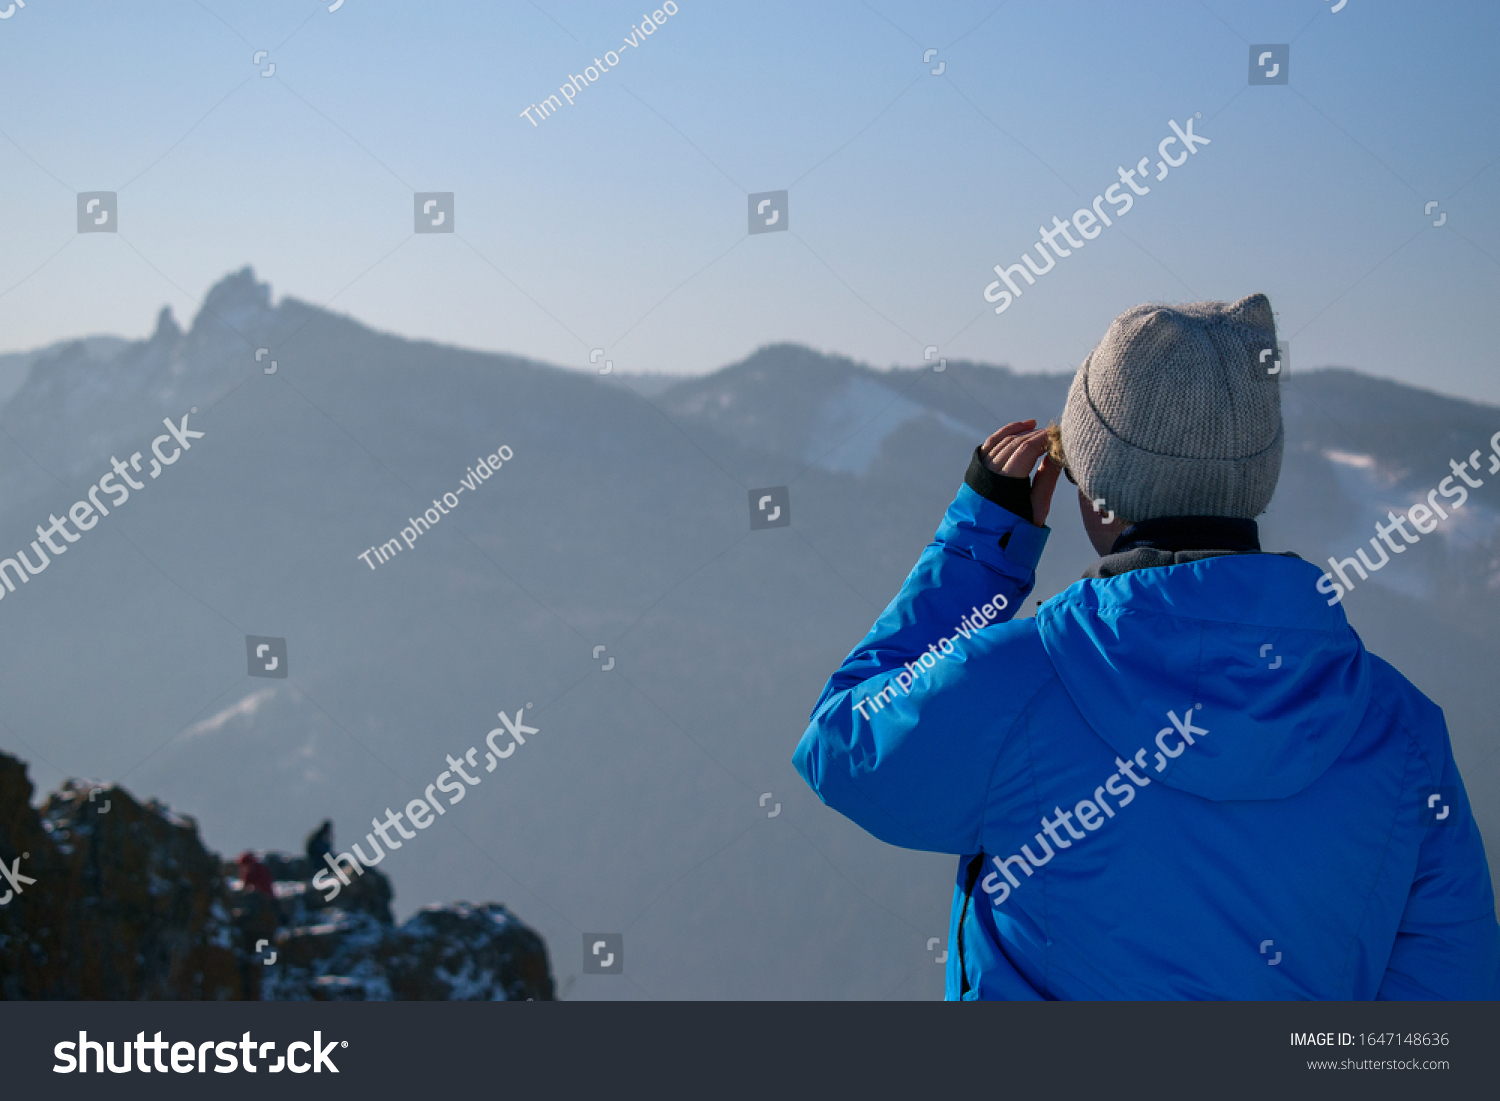 stock-photo-woman-in-the-mountains-in-wi